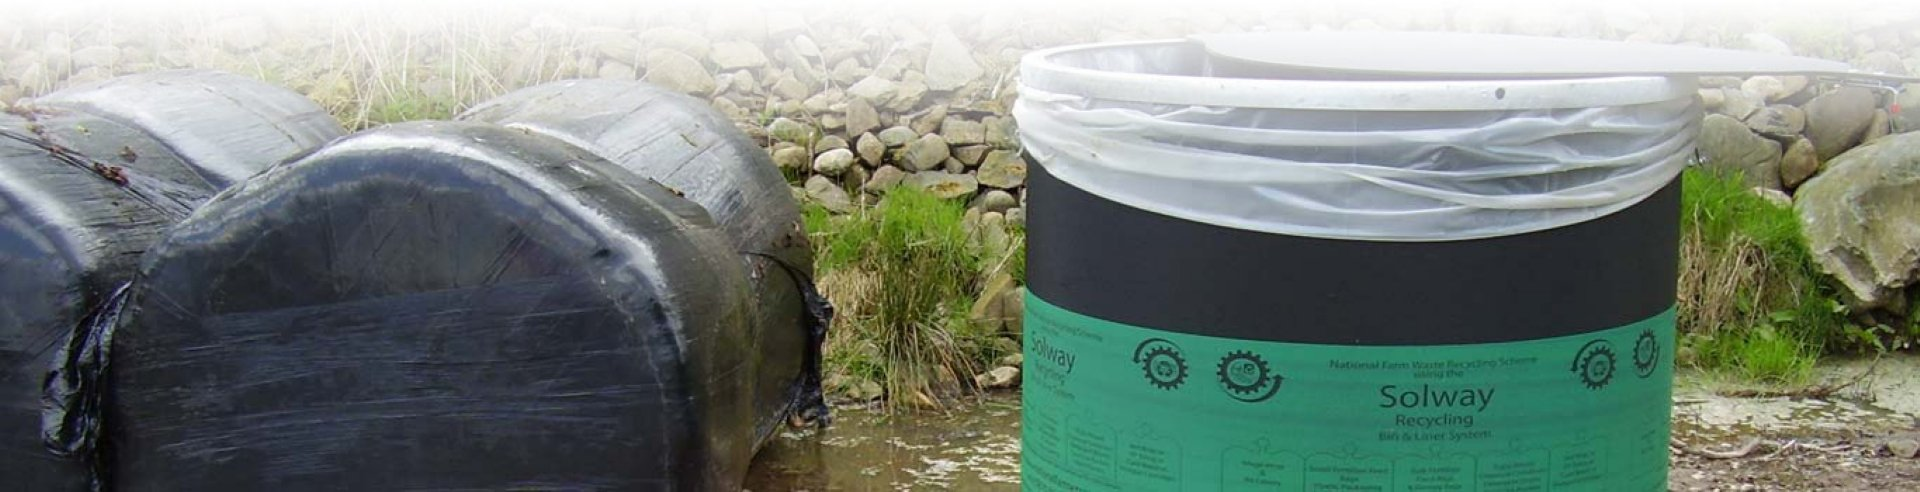 Solway Recycling Farm Plastic Collection Large Bulk